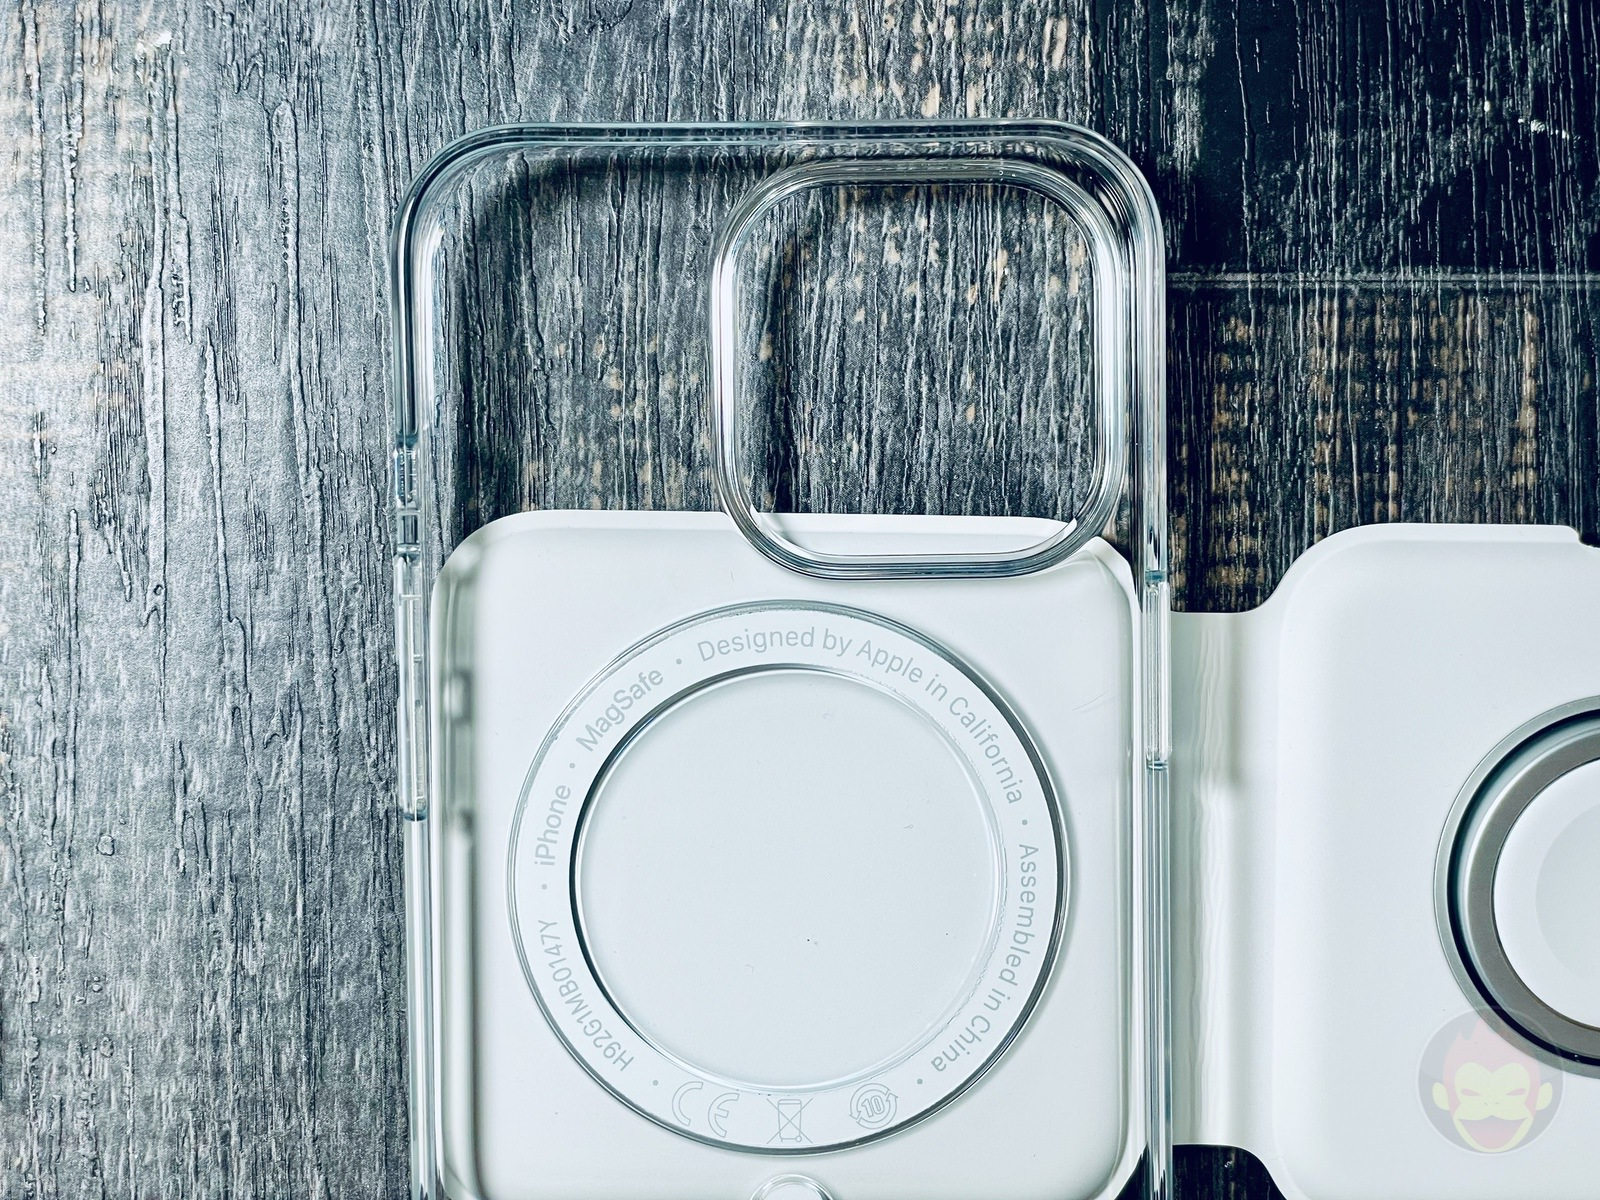 Iphone13pro cases magsafe duo charger 02